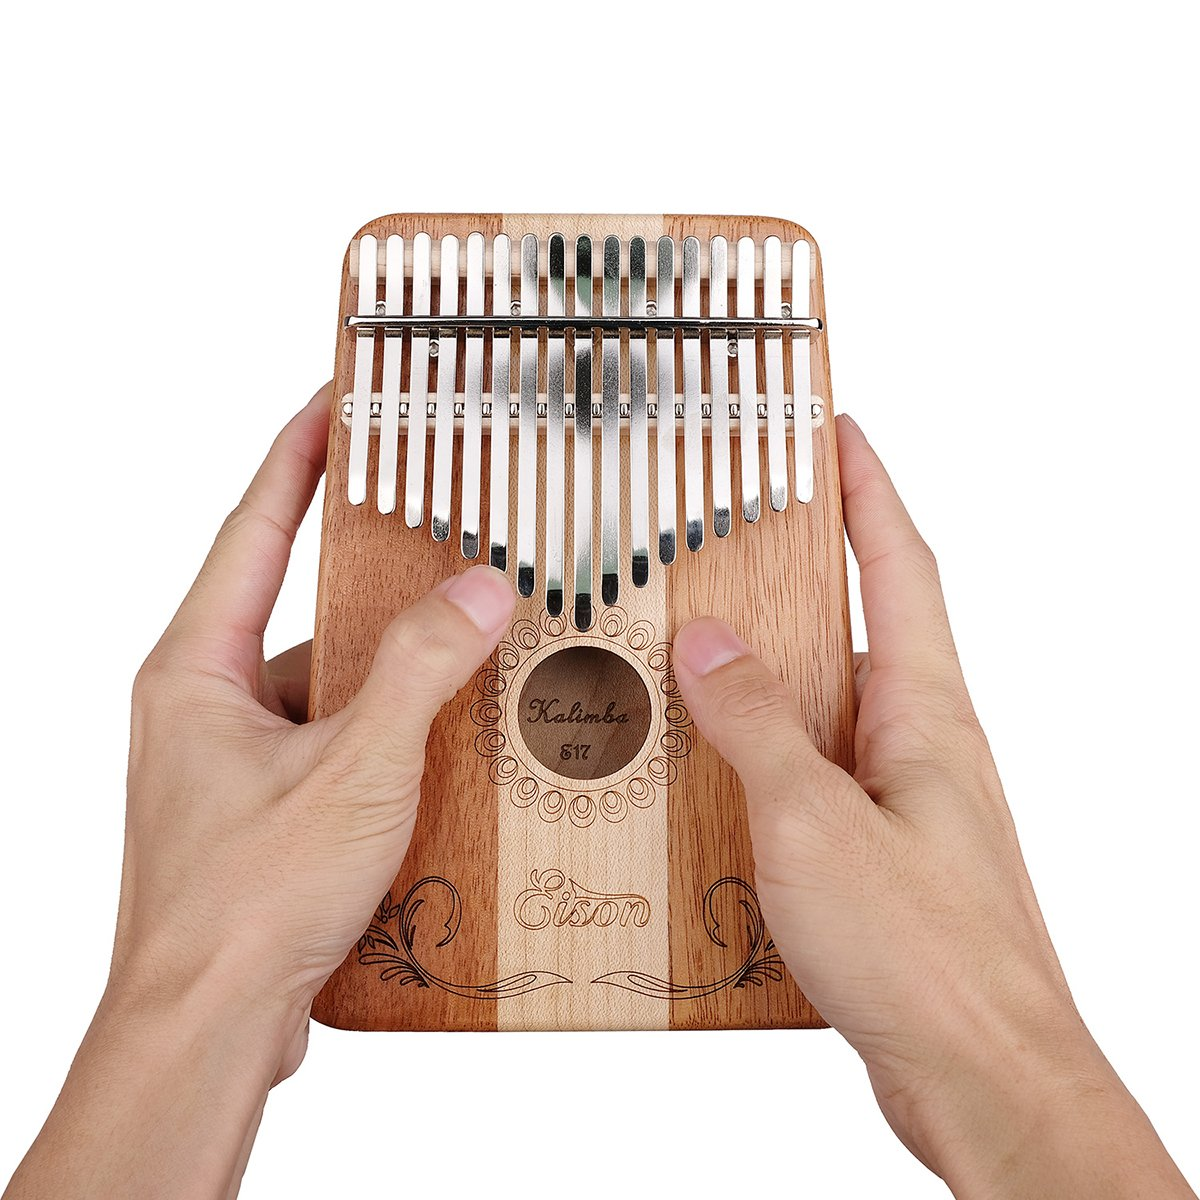 Kalimba,Eison Kalimba Thumb Piano Finger Piano 17 keys with Key Locking System with Instruction and Tune Hammer, Solid Wood Mahogany & Maple Body- Best Gift for Music Fans Kids Adults,E-17 by Eison (Image #3)